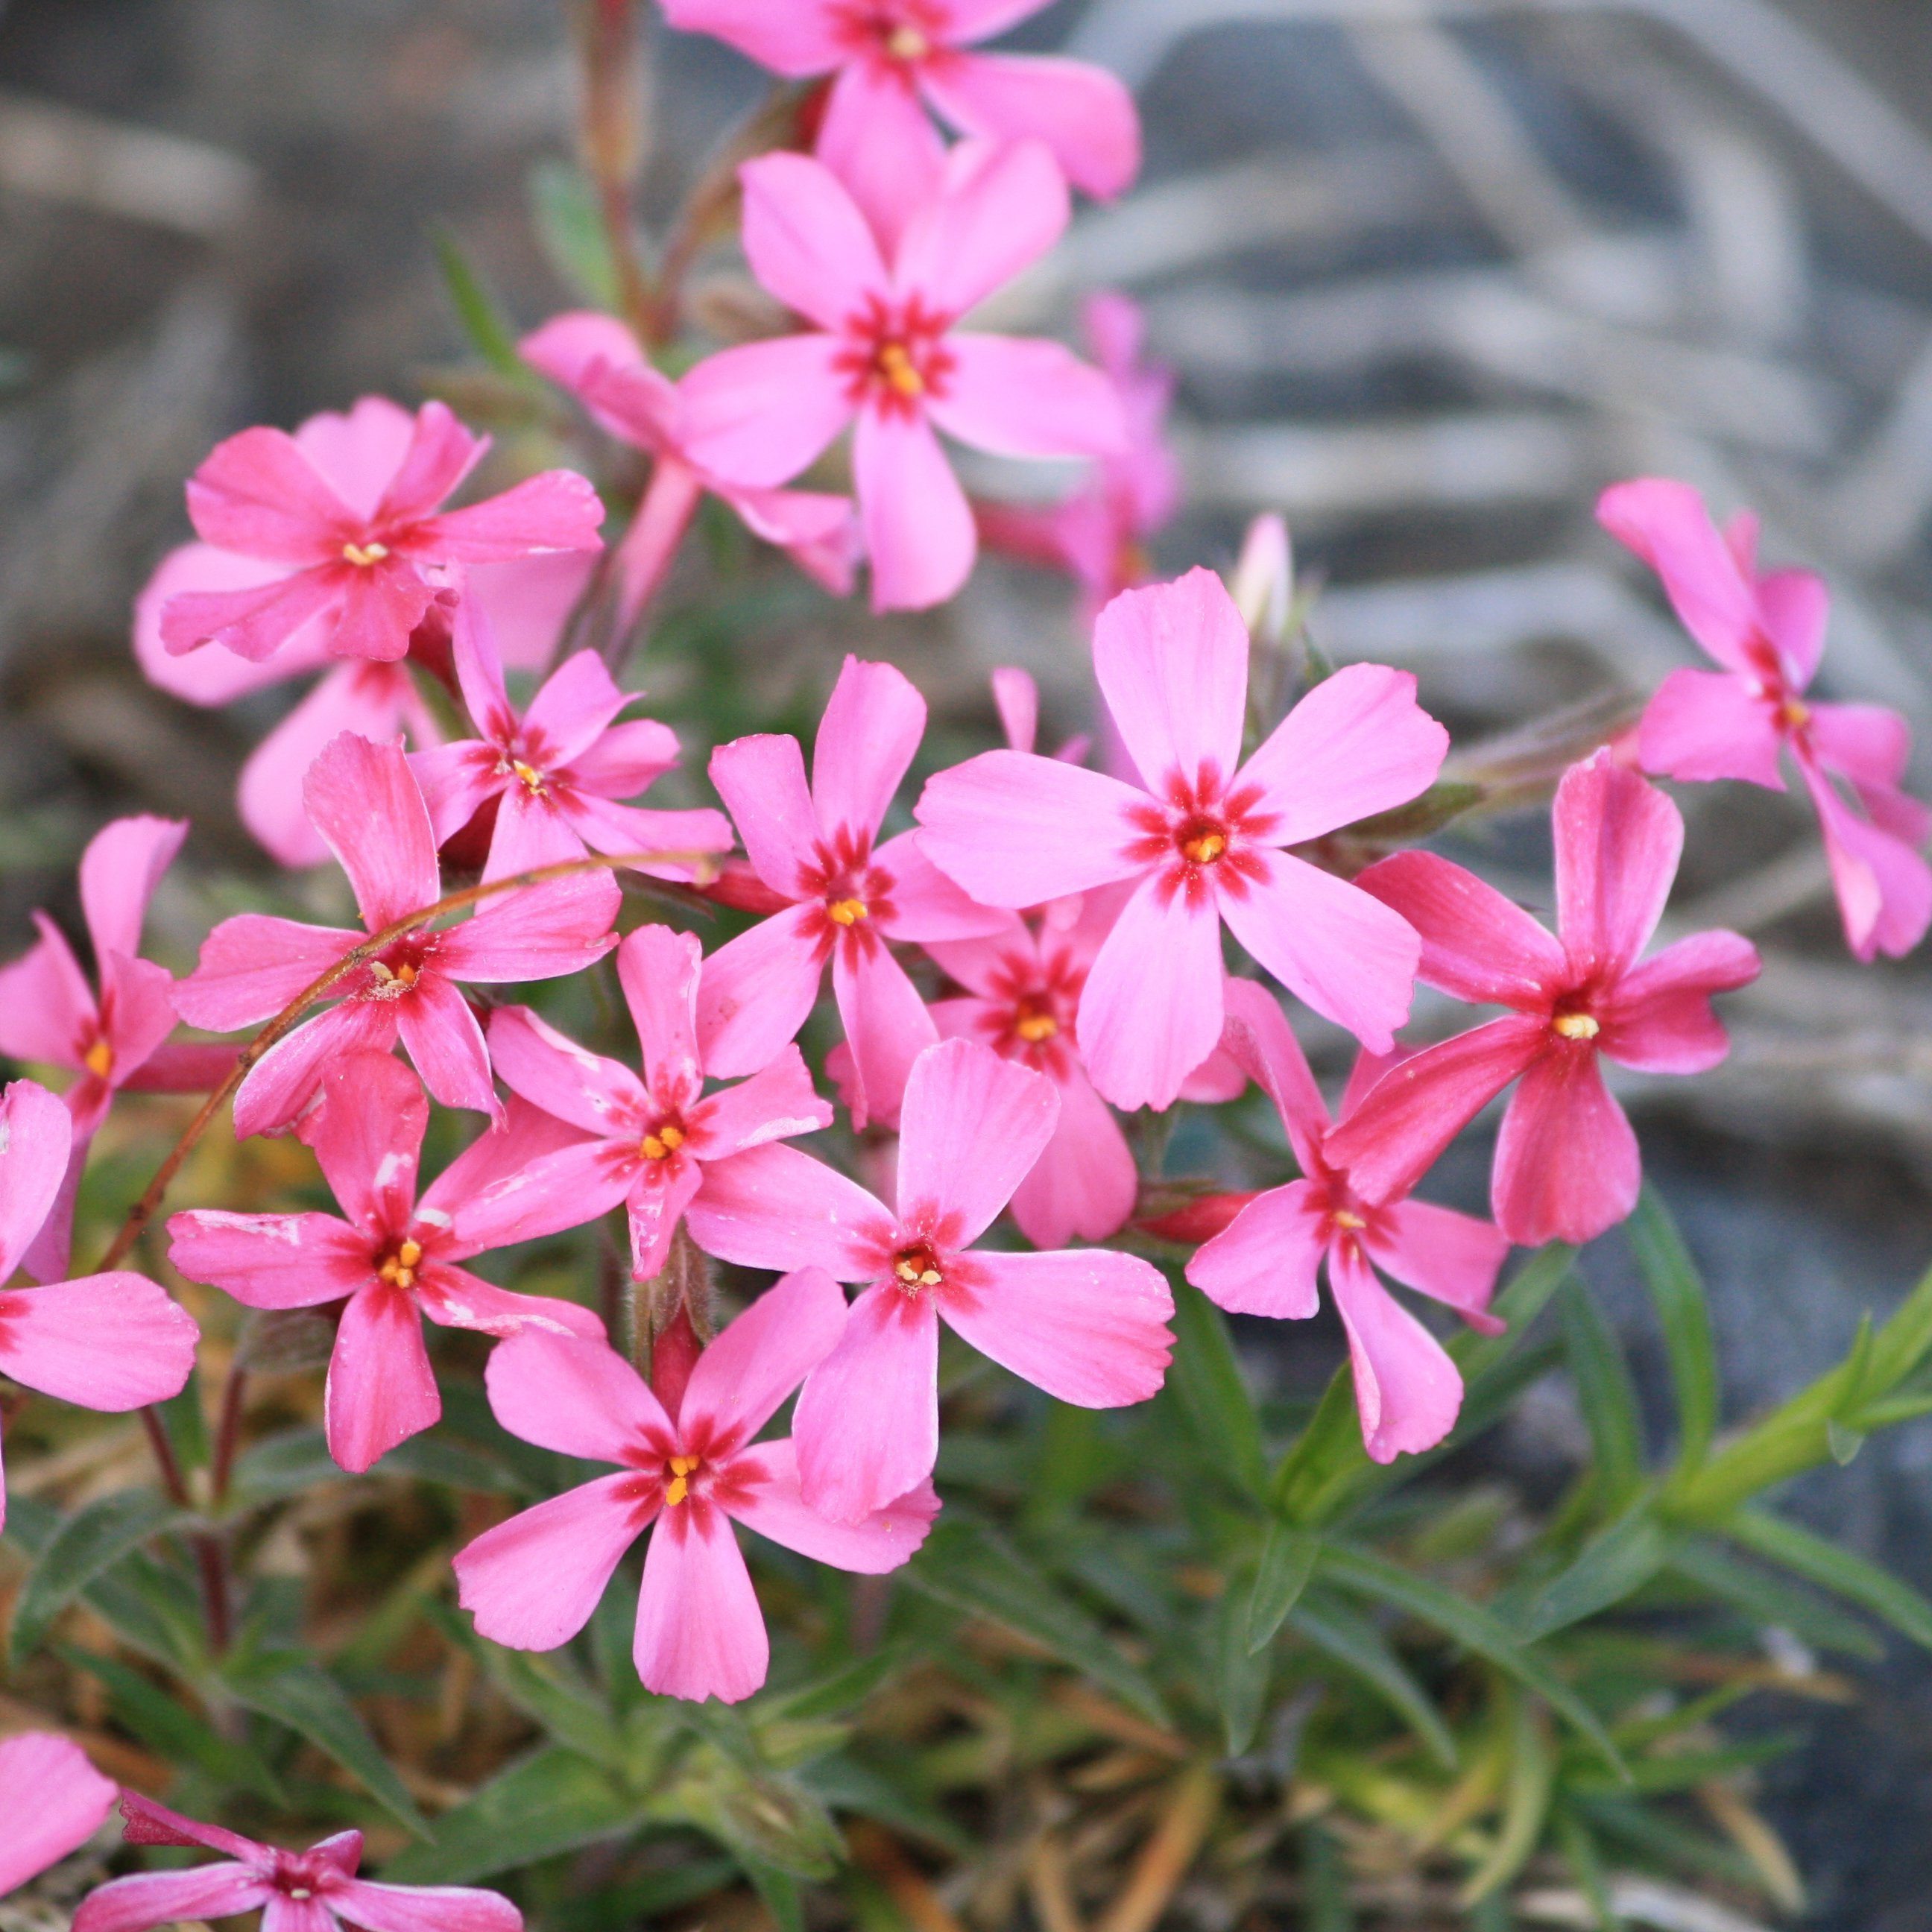 Creeping Phlox Pink Flowers Picture Free Photograph